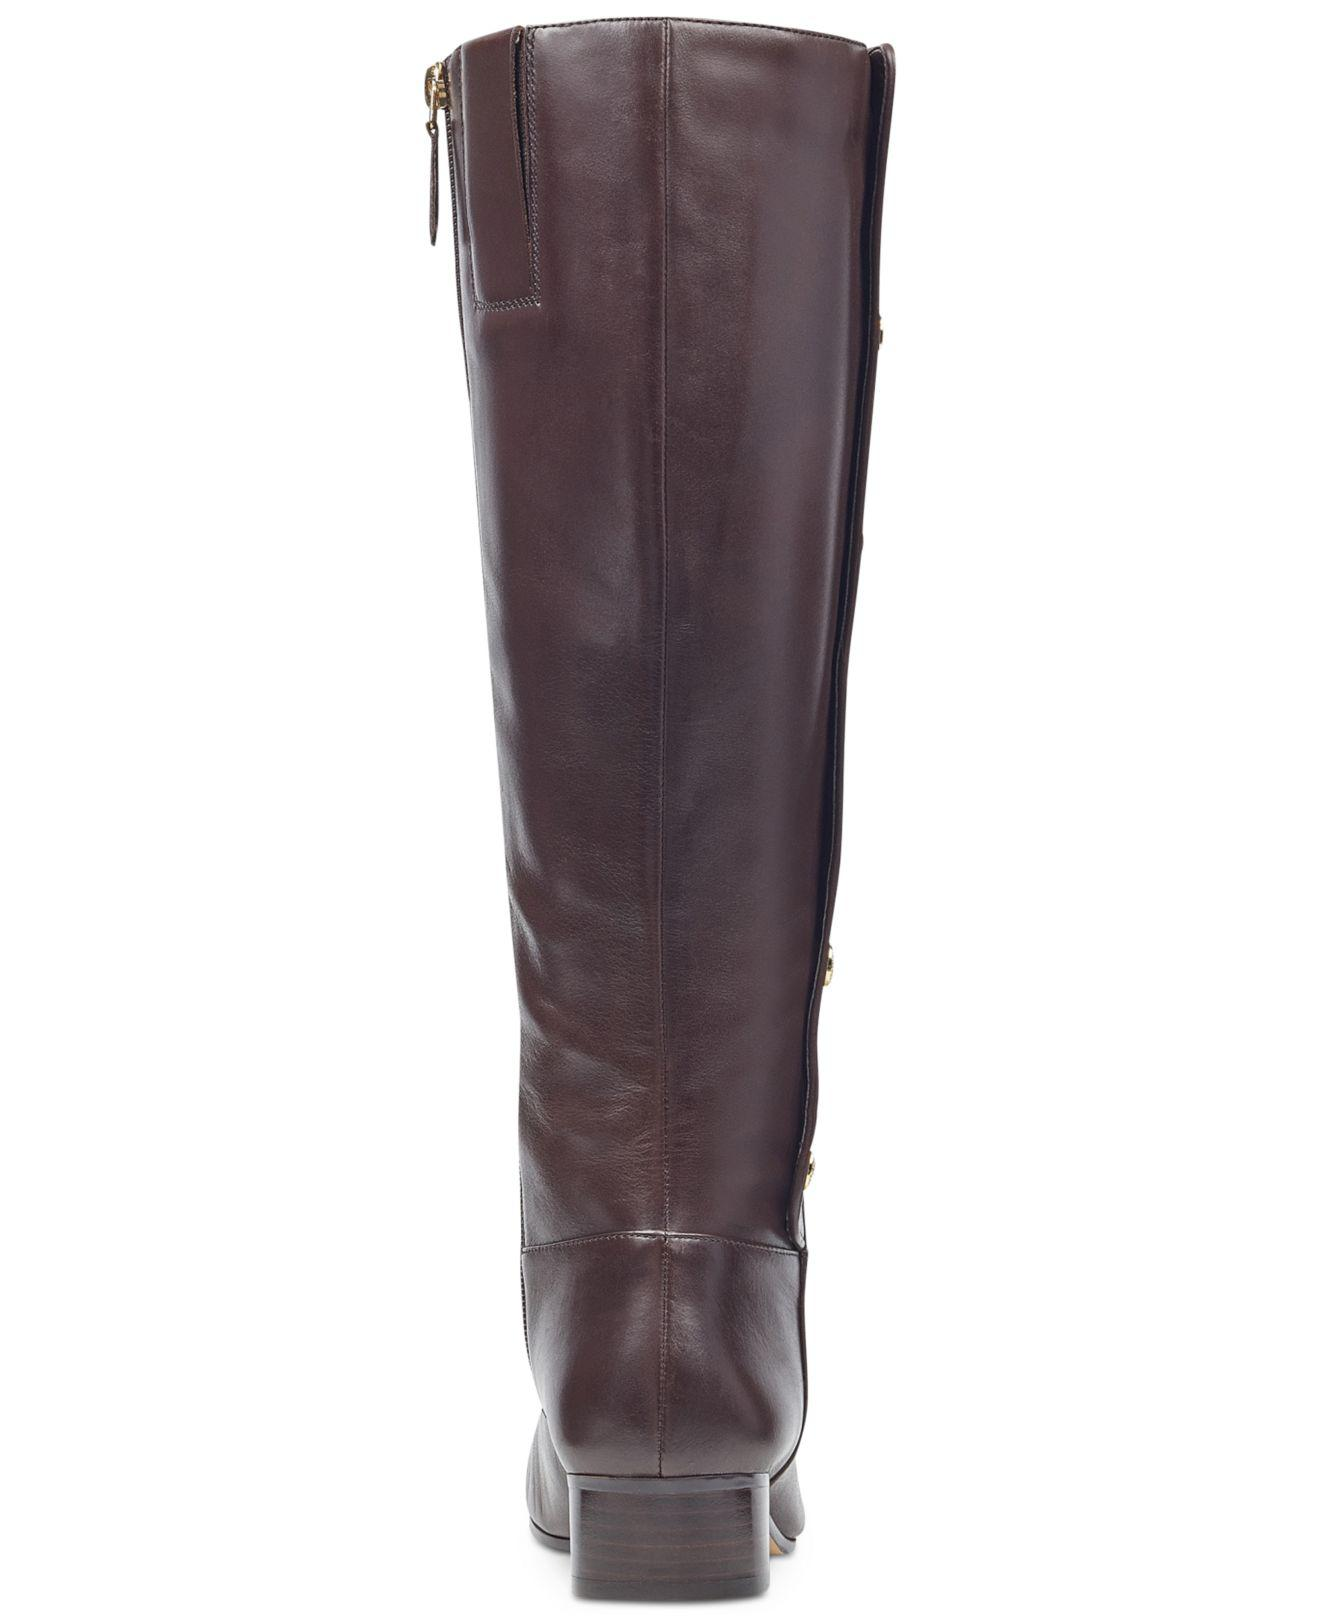 9cc47d46d10 Lyst - Nine West Oreyan Tall Boots in Brown